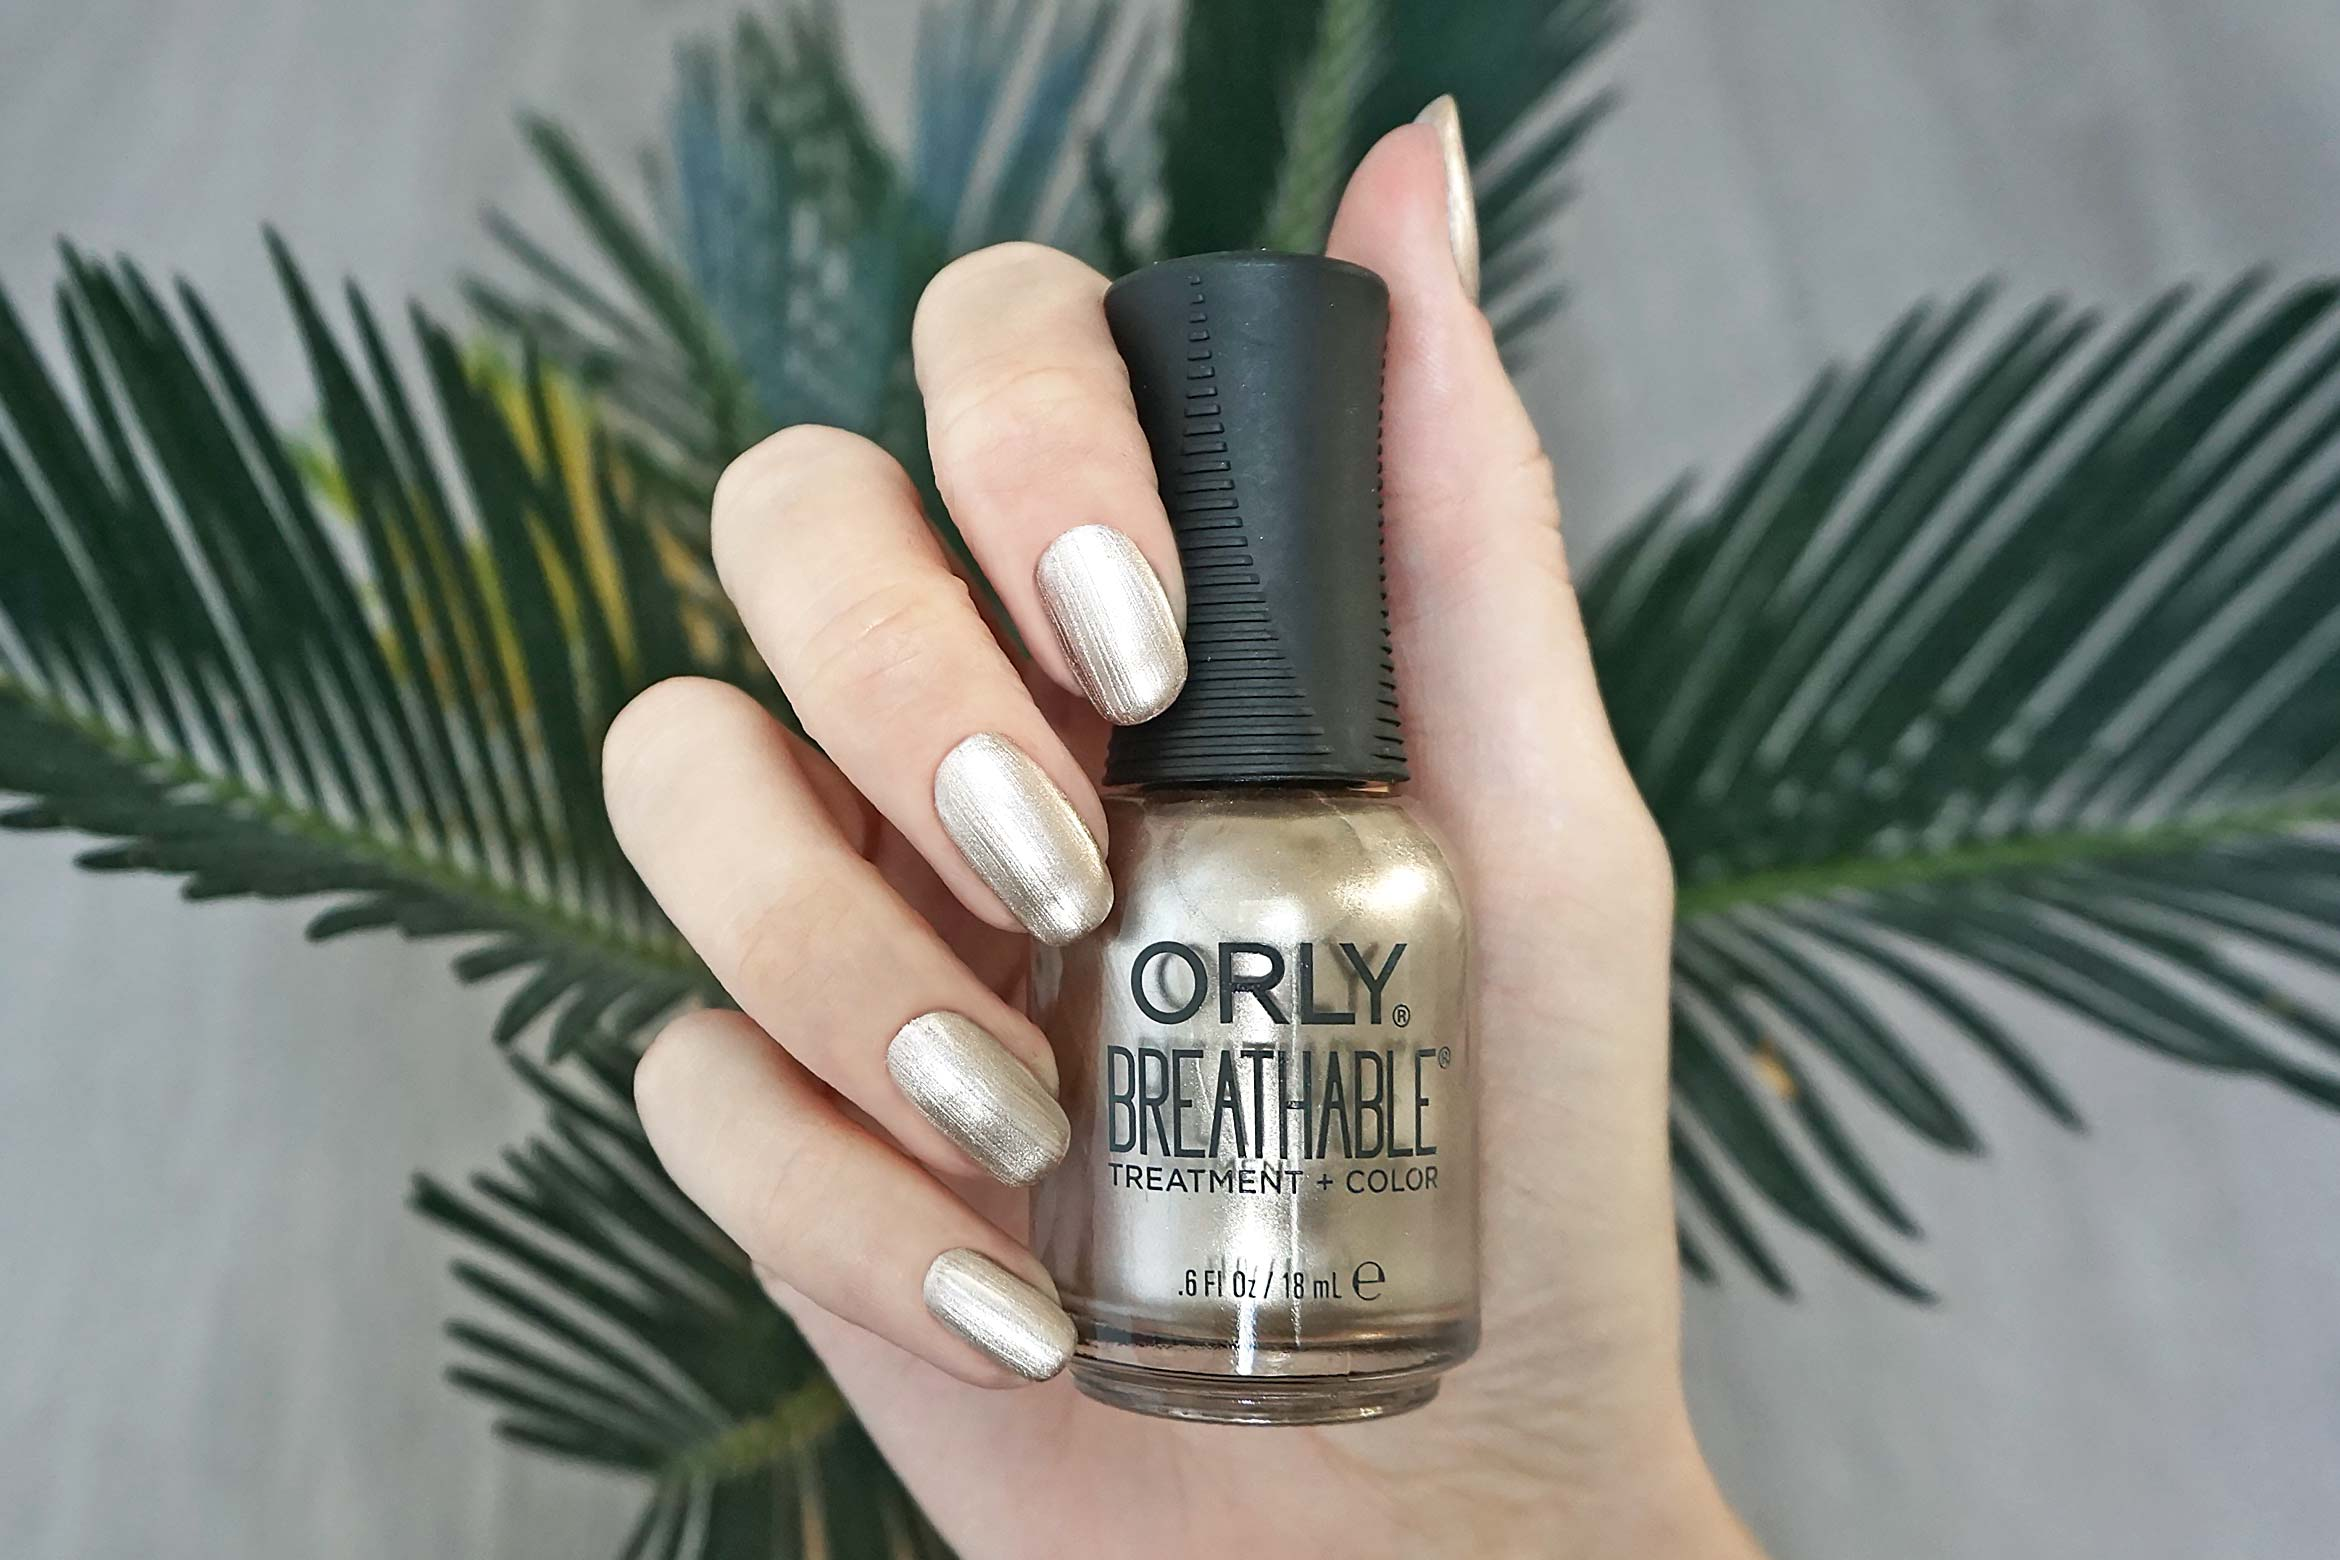 nagellak orly breathable treatment color rearview swatch